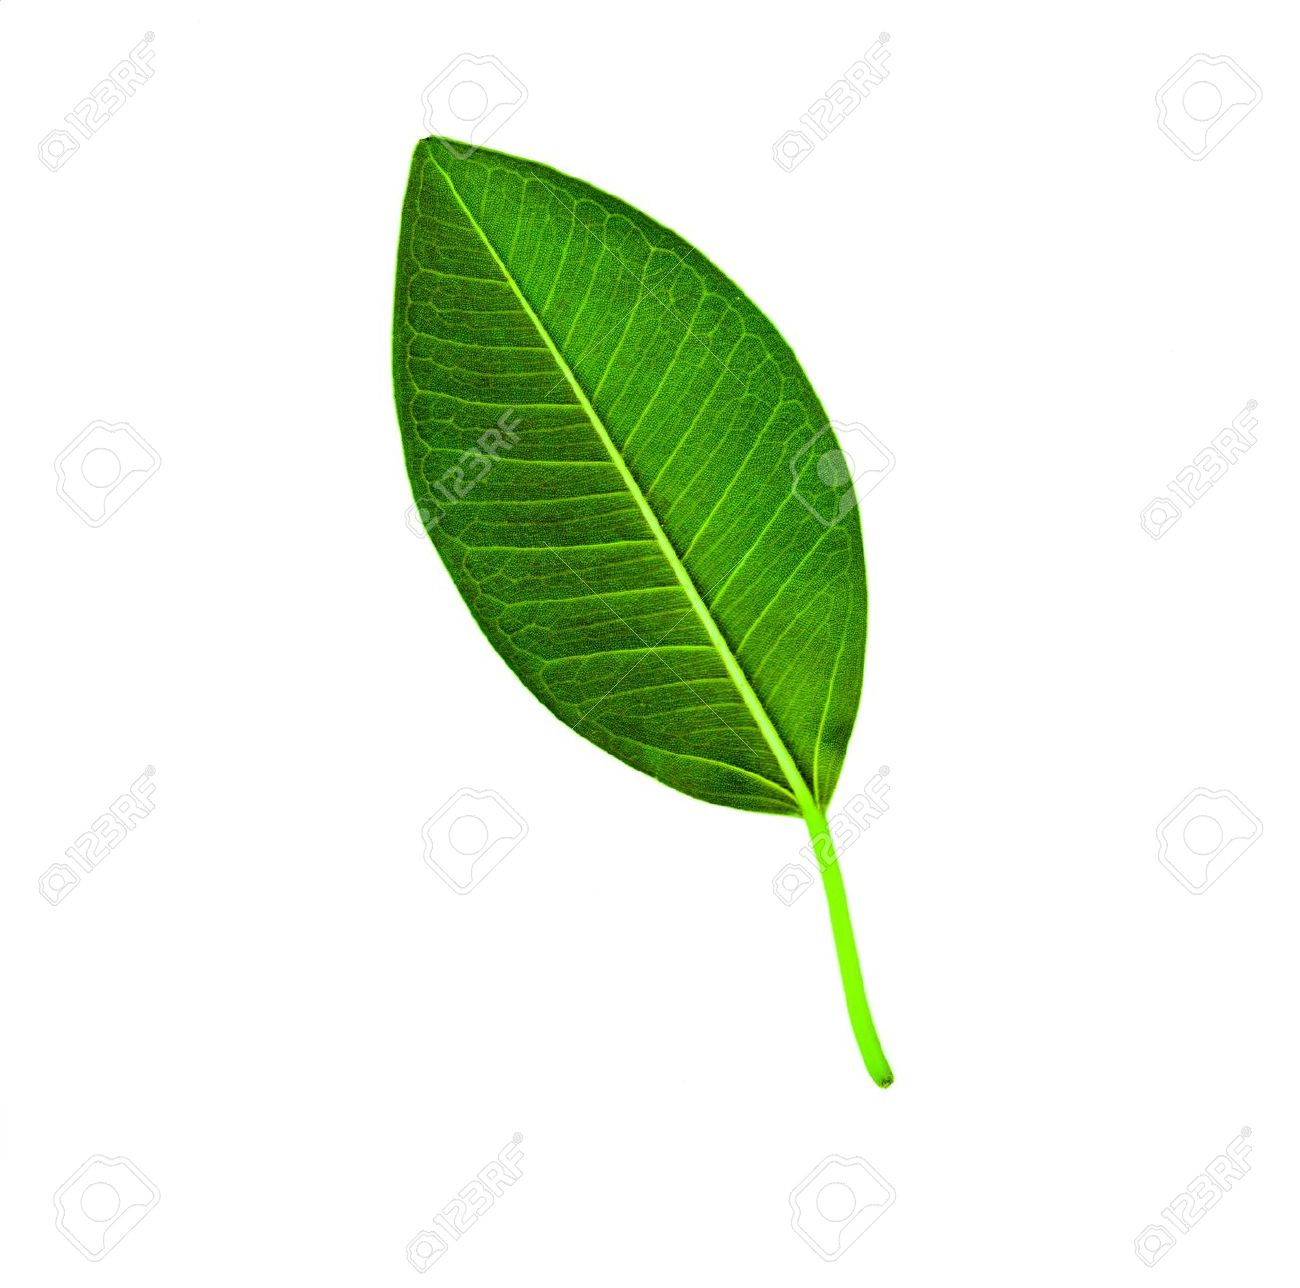 The back side of a leaf showing stem and veins Stock Photo - 11754300